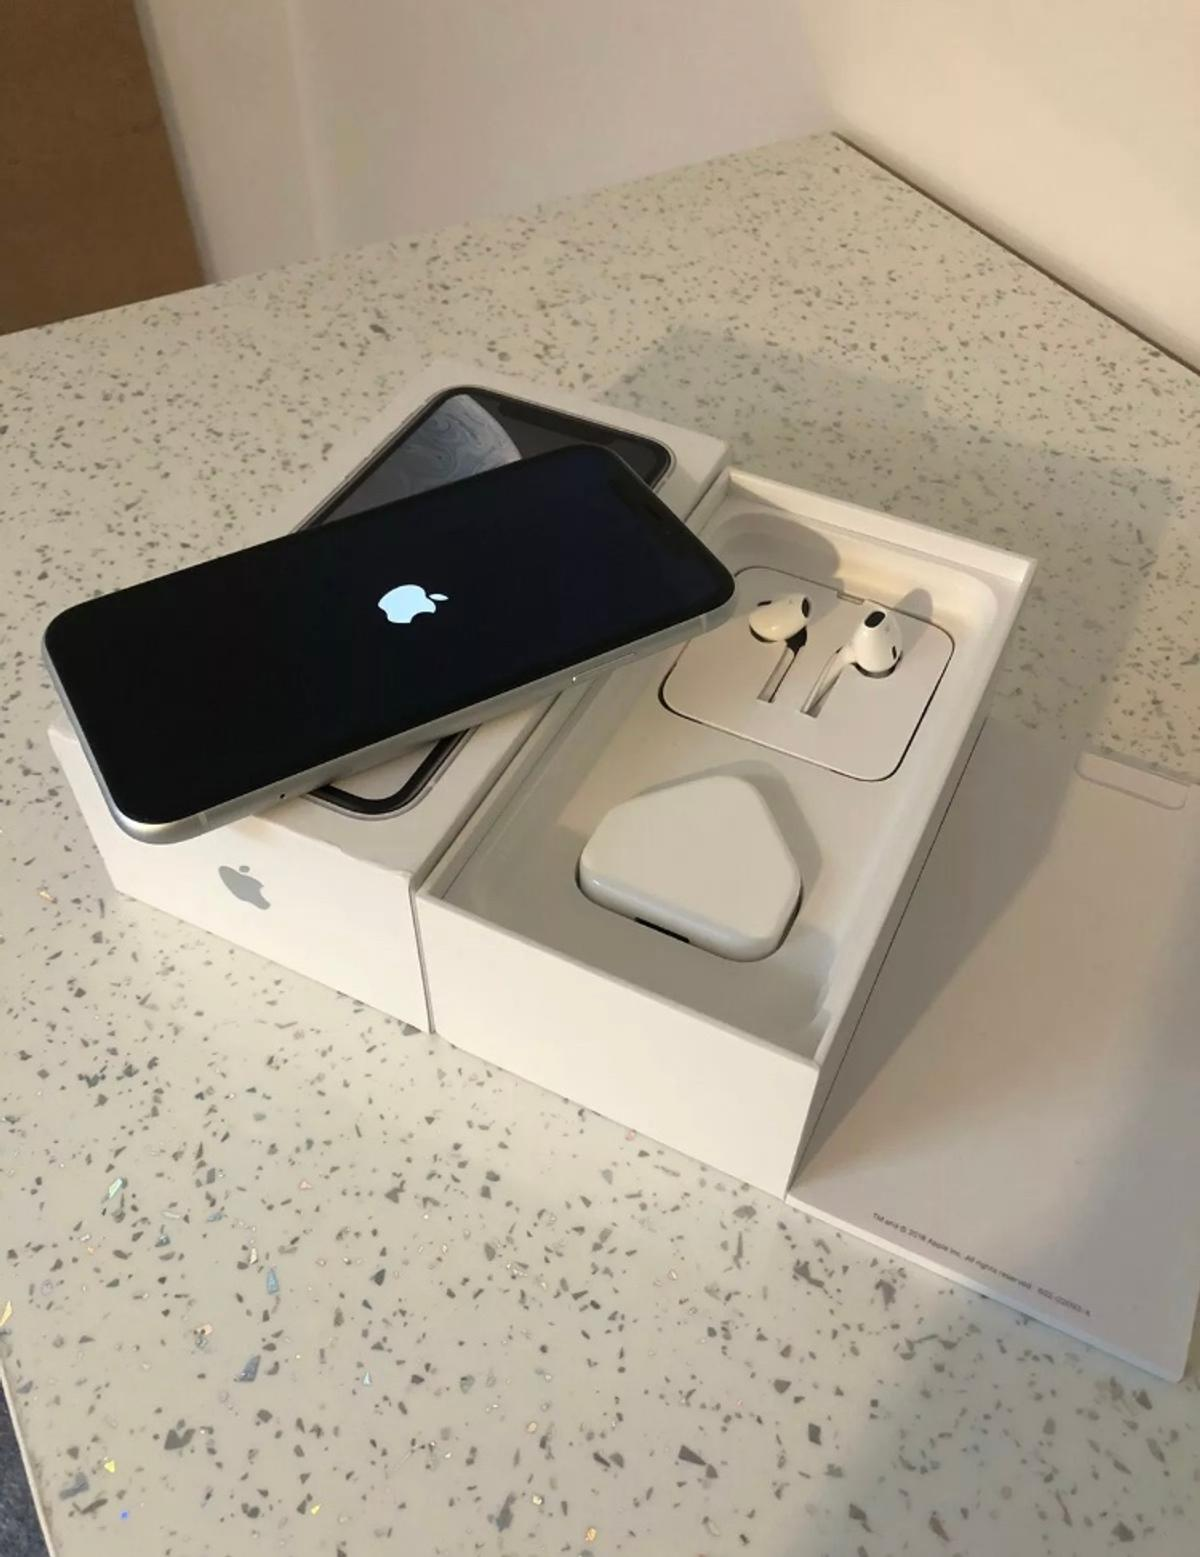 Recently upgraded, therefore selling my Apple iPhone XR, 128GB, Unlocked.  The phone is in excellent condition and has always been kept in a case with screen protector.  See pictures to see the condition of the iPhone.  iPhone comes boxed with earphones and charger.  The iPhone has been factory reset ready for new owner.  Any questions drop me a message.  UK postage only once paymeng received.  Thanks